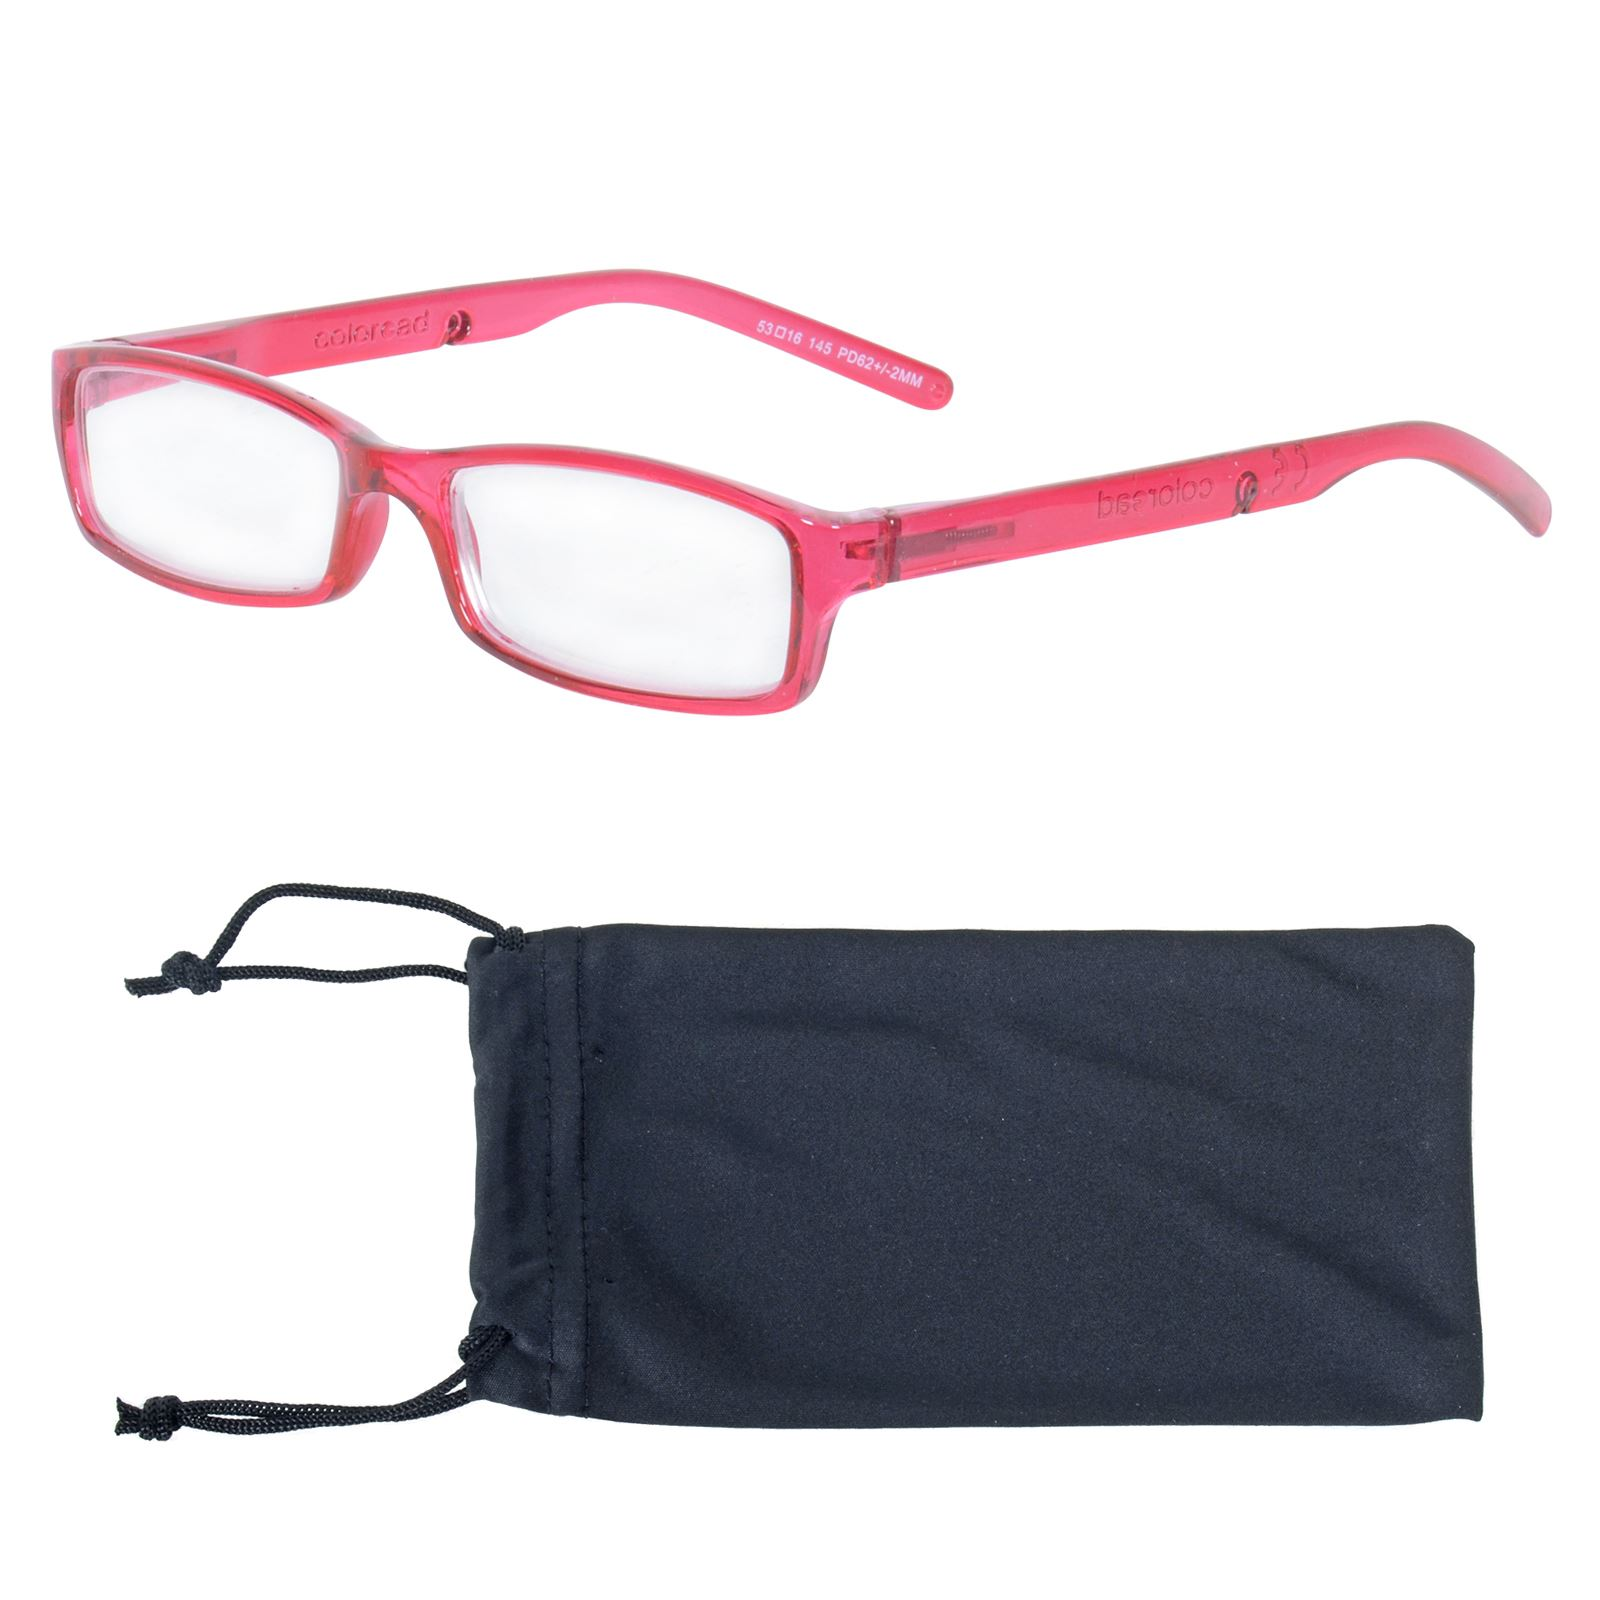 e903f091fbd Details about Sight Station Red Reading Glasses With Case Rectangle Plastic  Frames +2.50